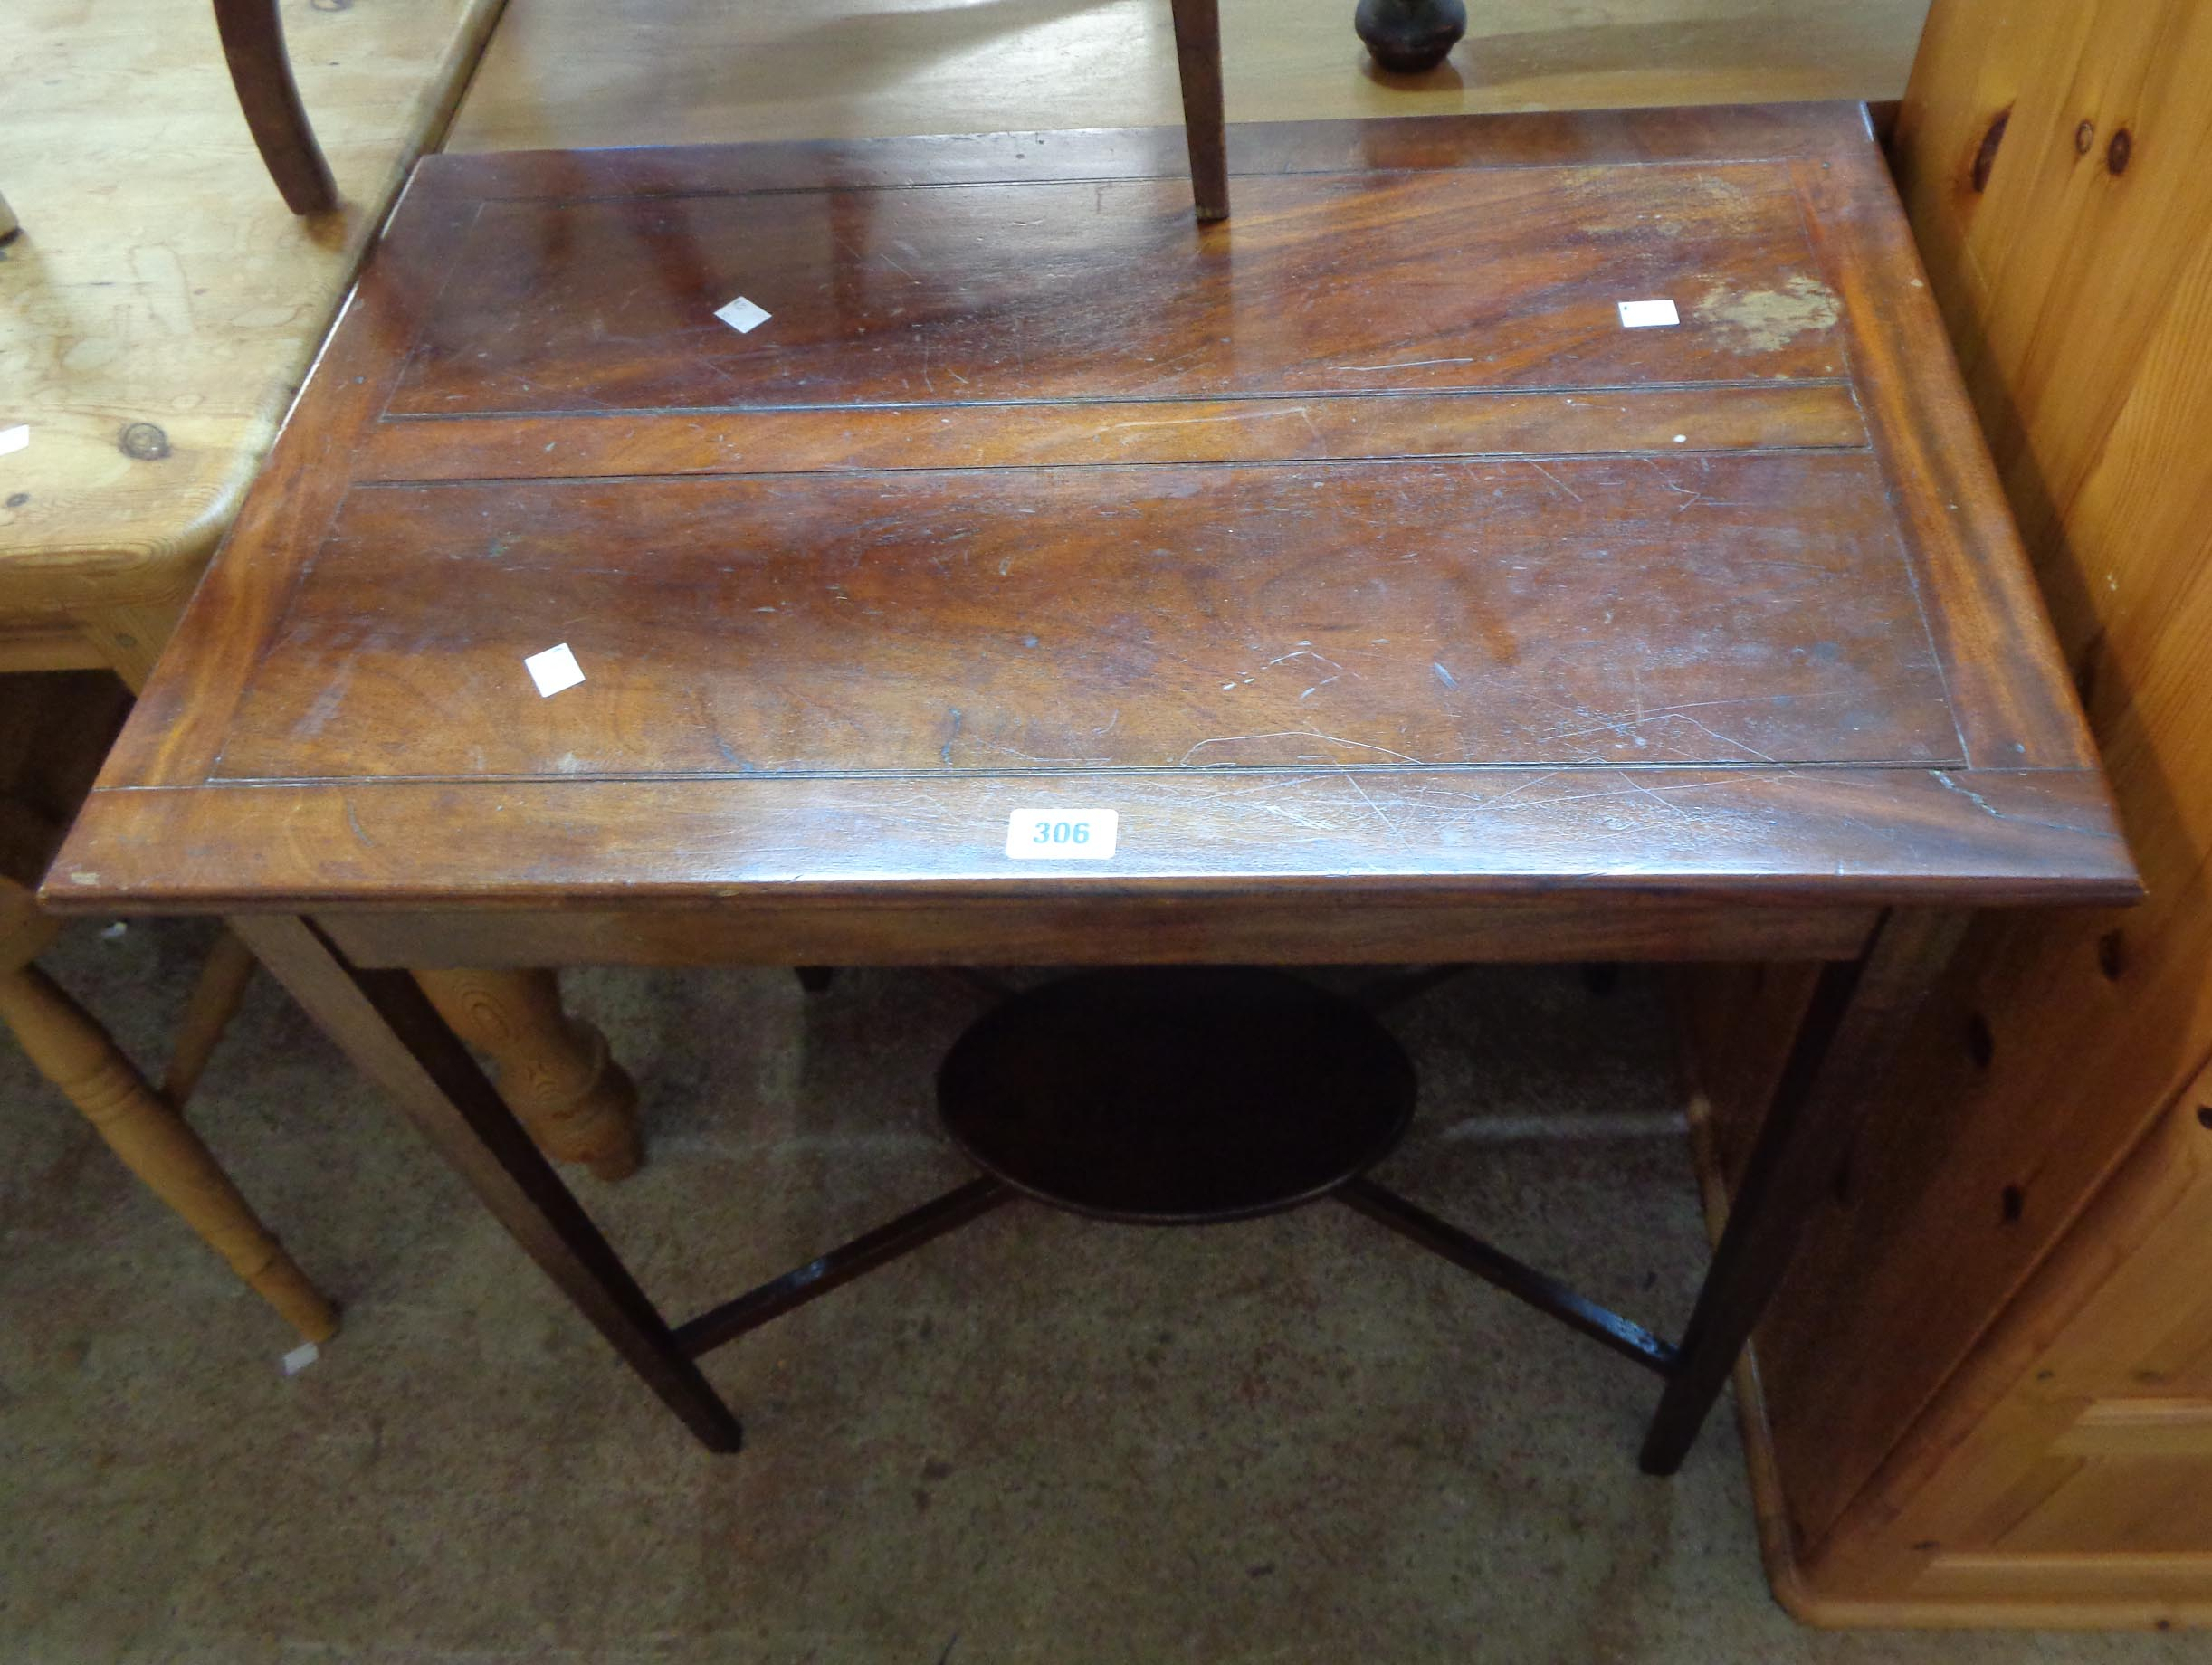 A 74cm Edwardian walnut occasional table, set on square tapered supports with small undertier